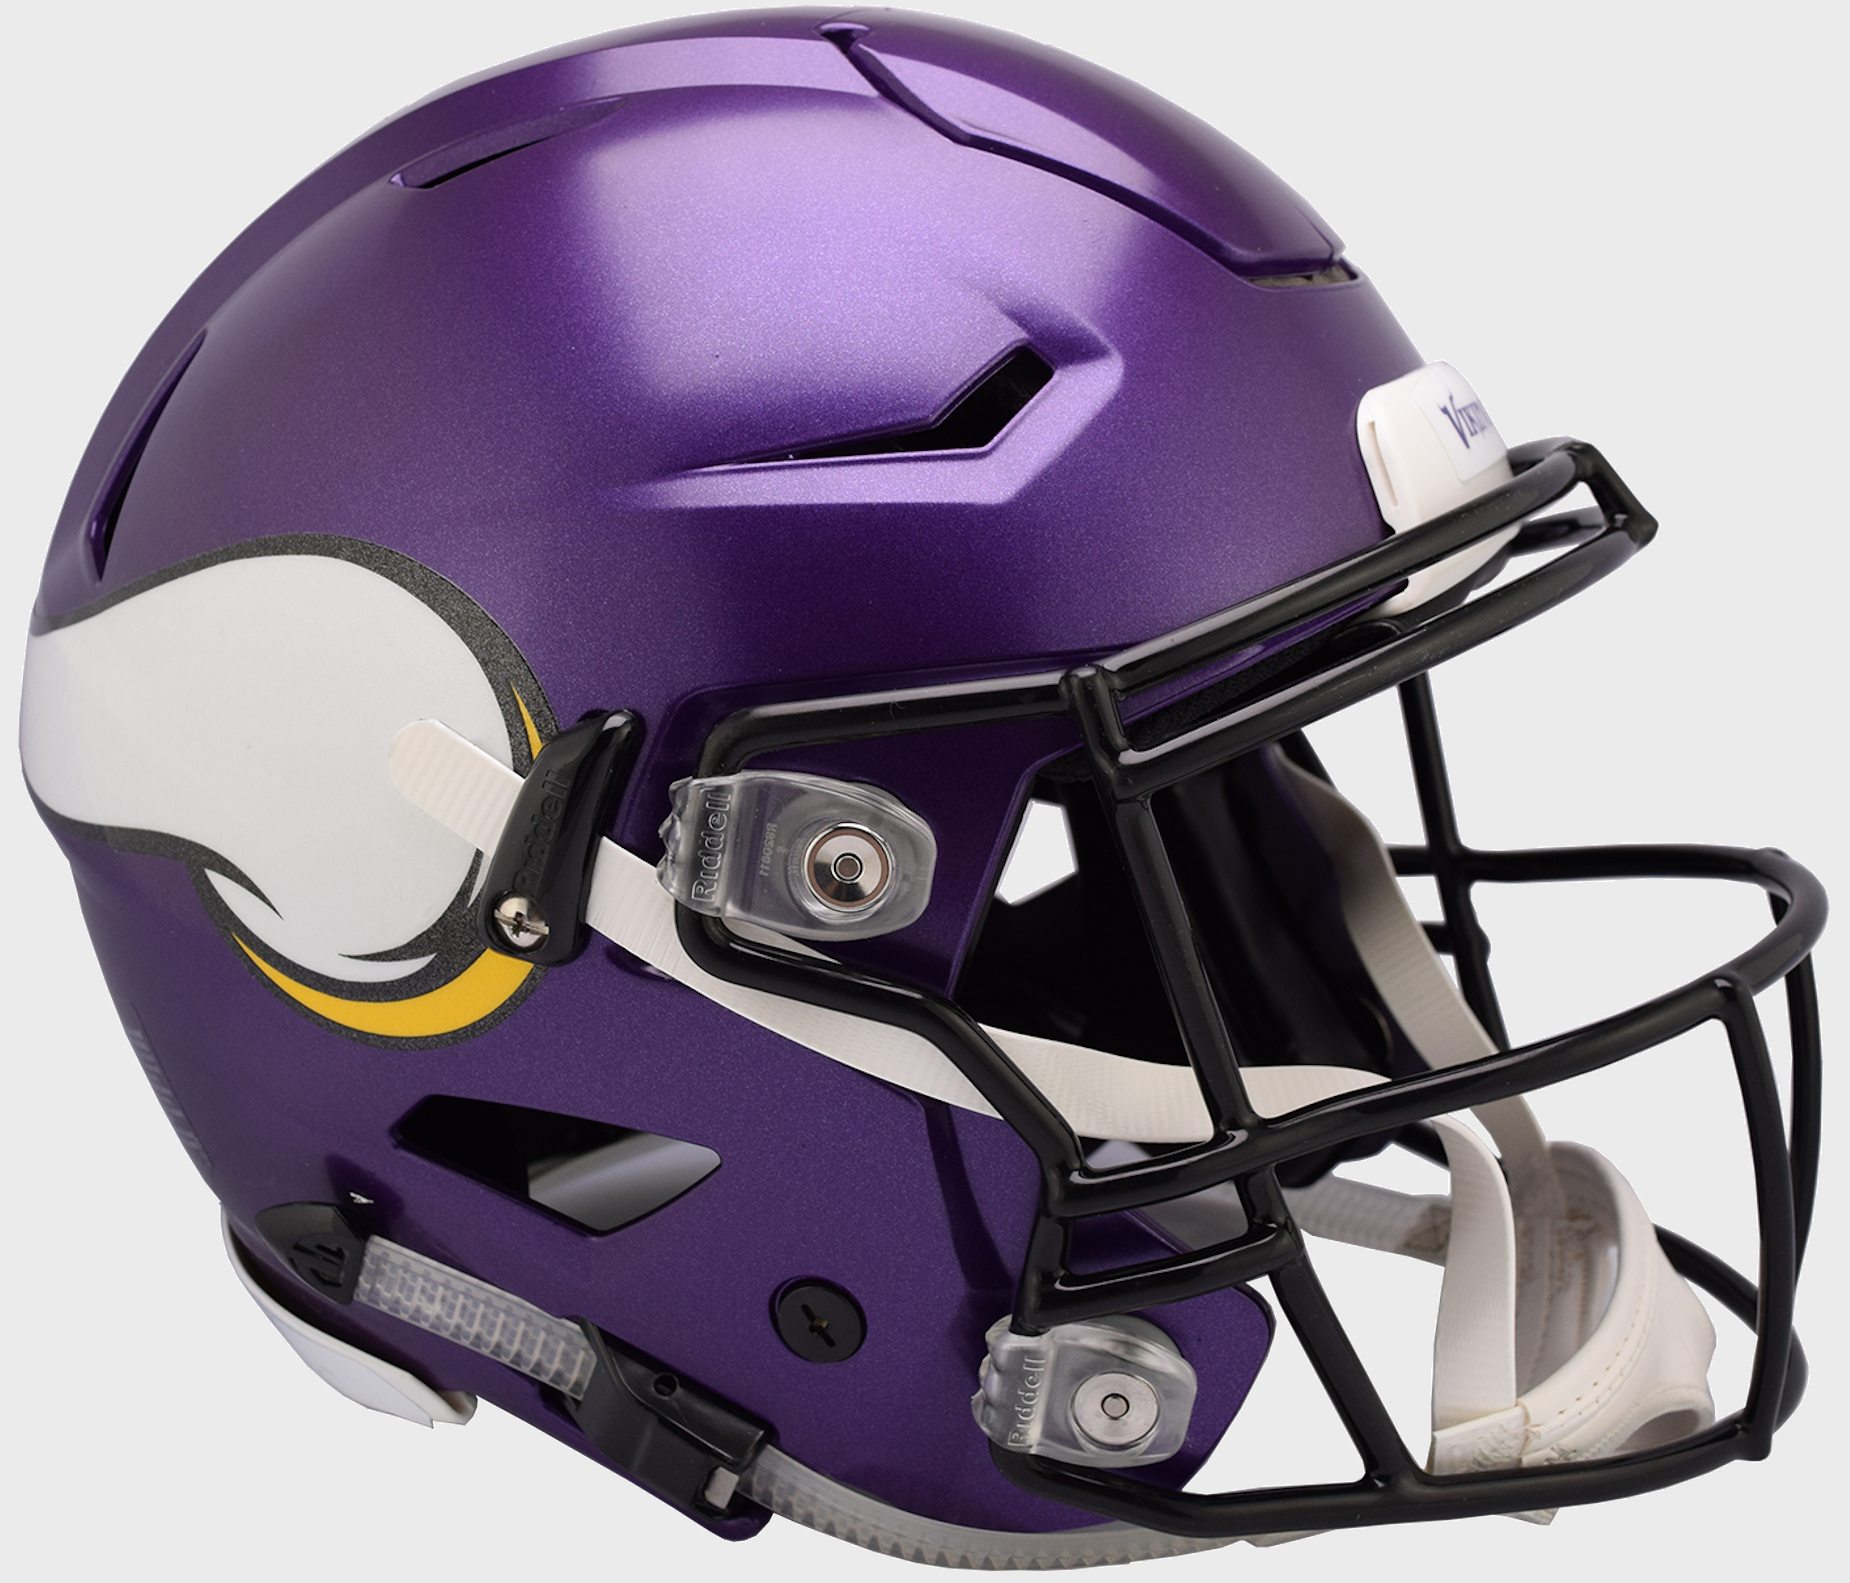 Minnesota Vikings SpeedFlex Football Helmet